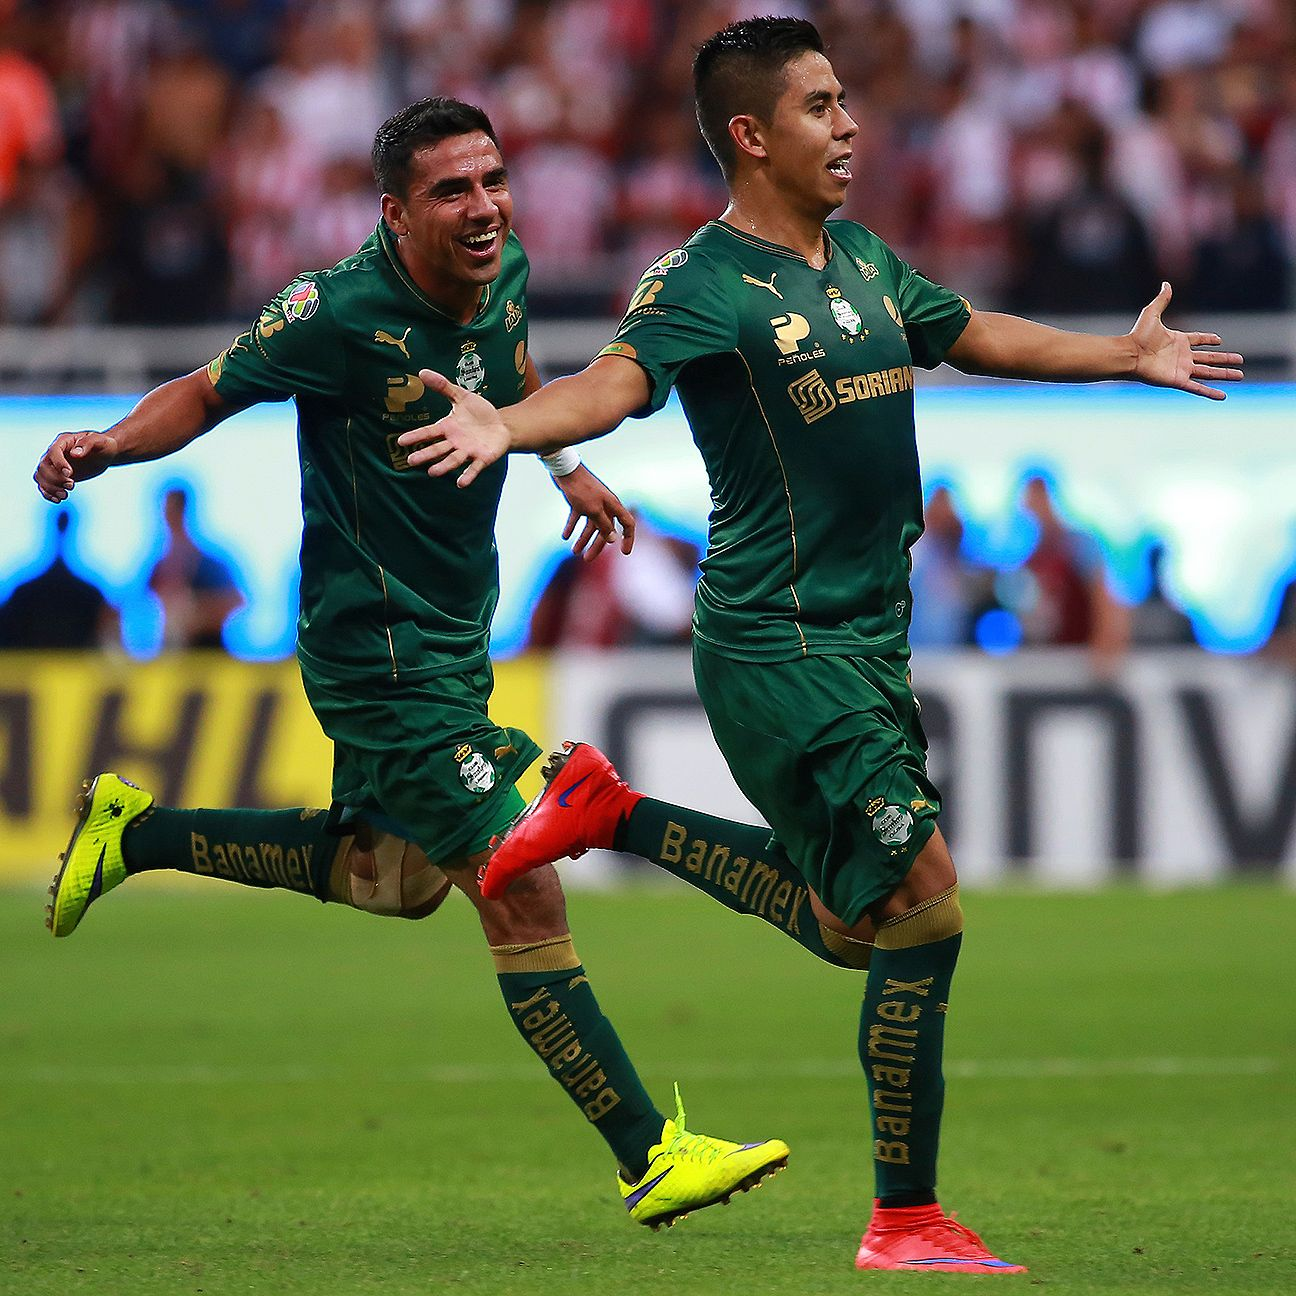 Nestor Calderon, right, guided Santos to their emphatic semifinal triumph in Guadalajara versus Chivas.